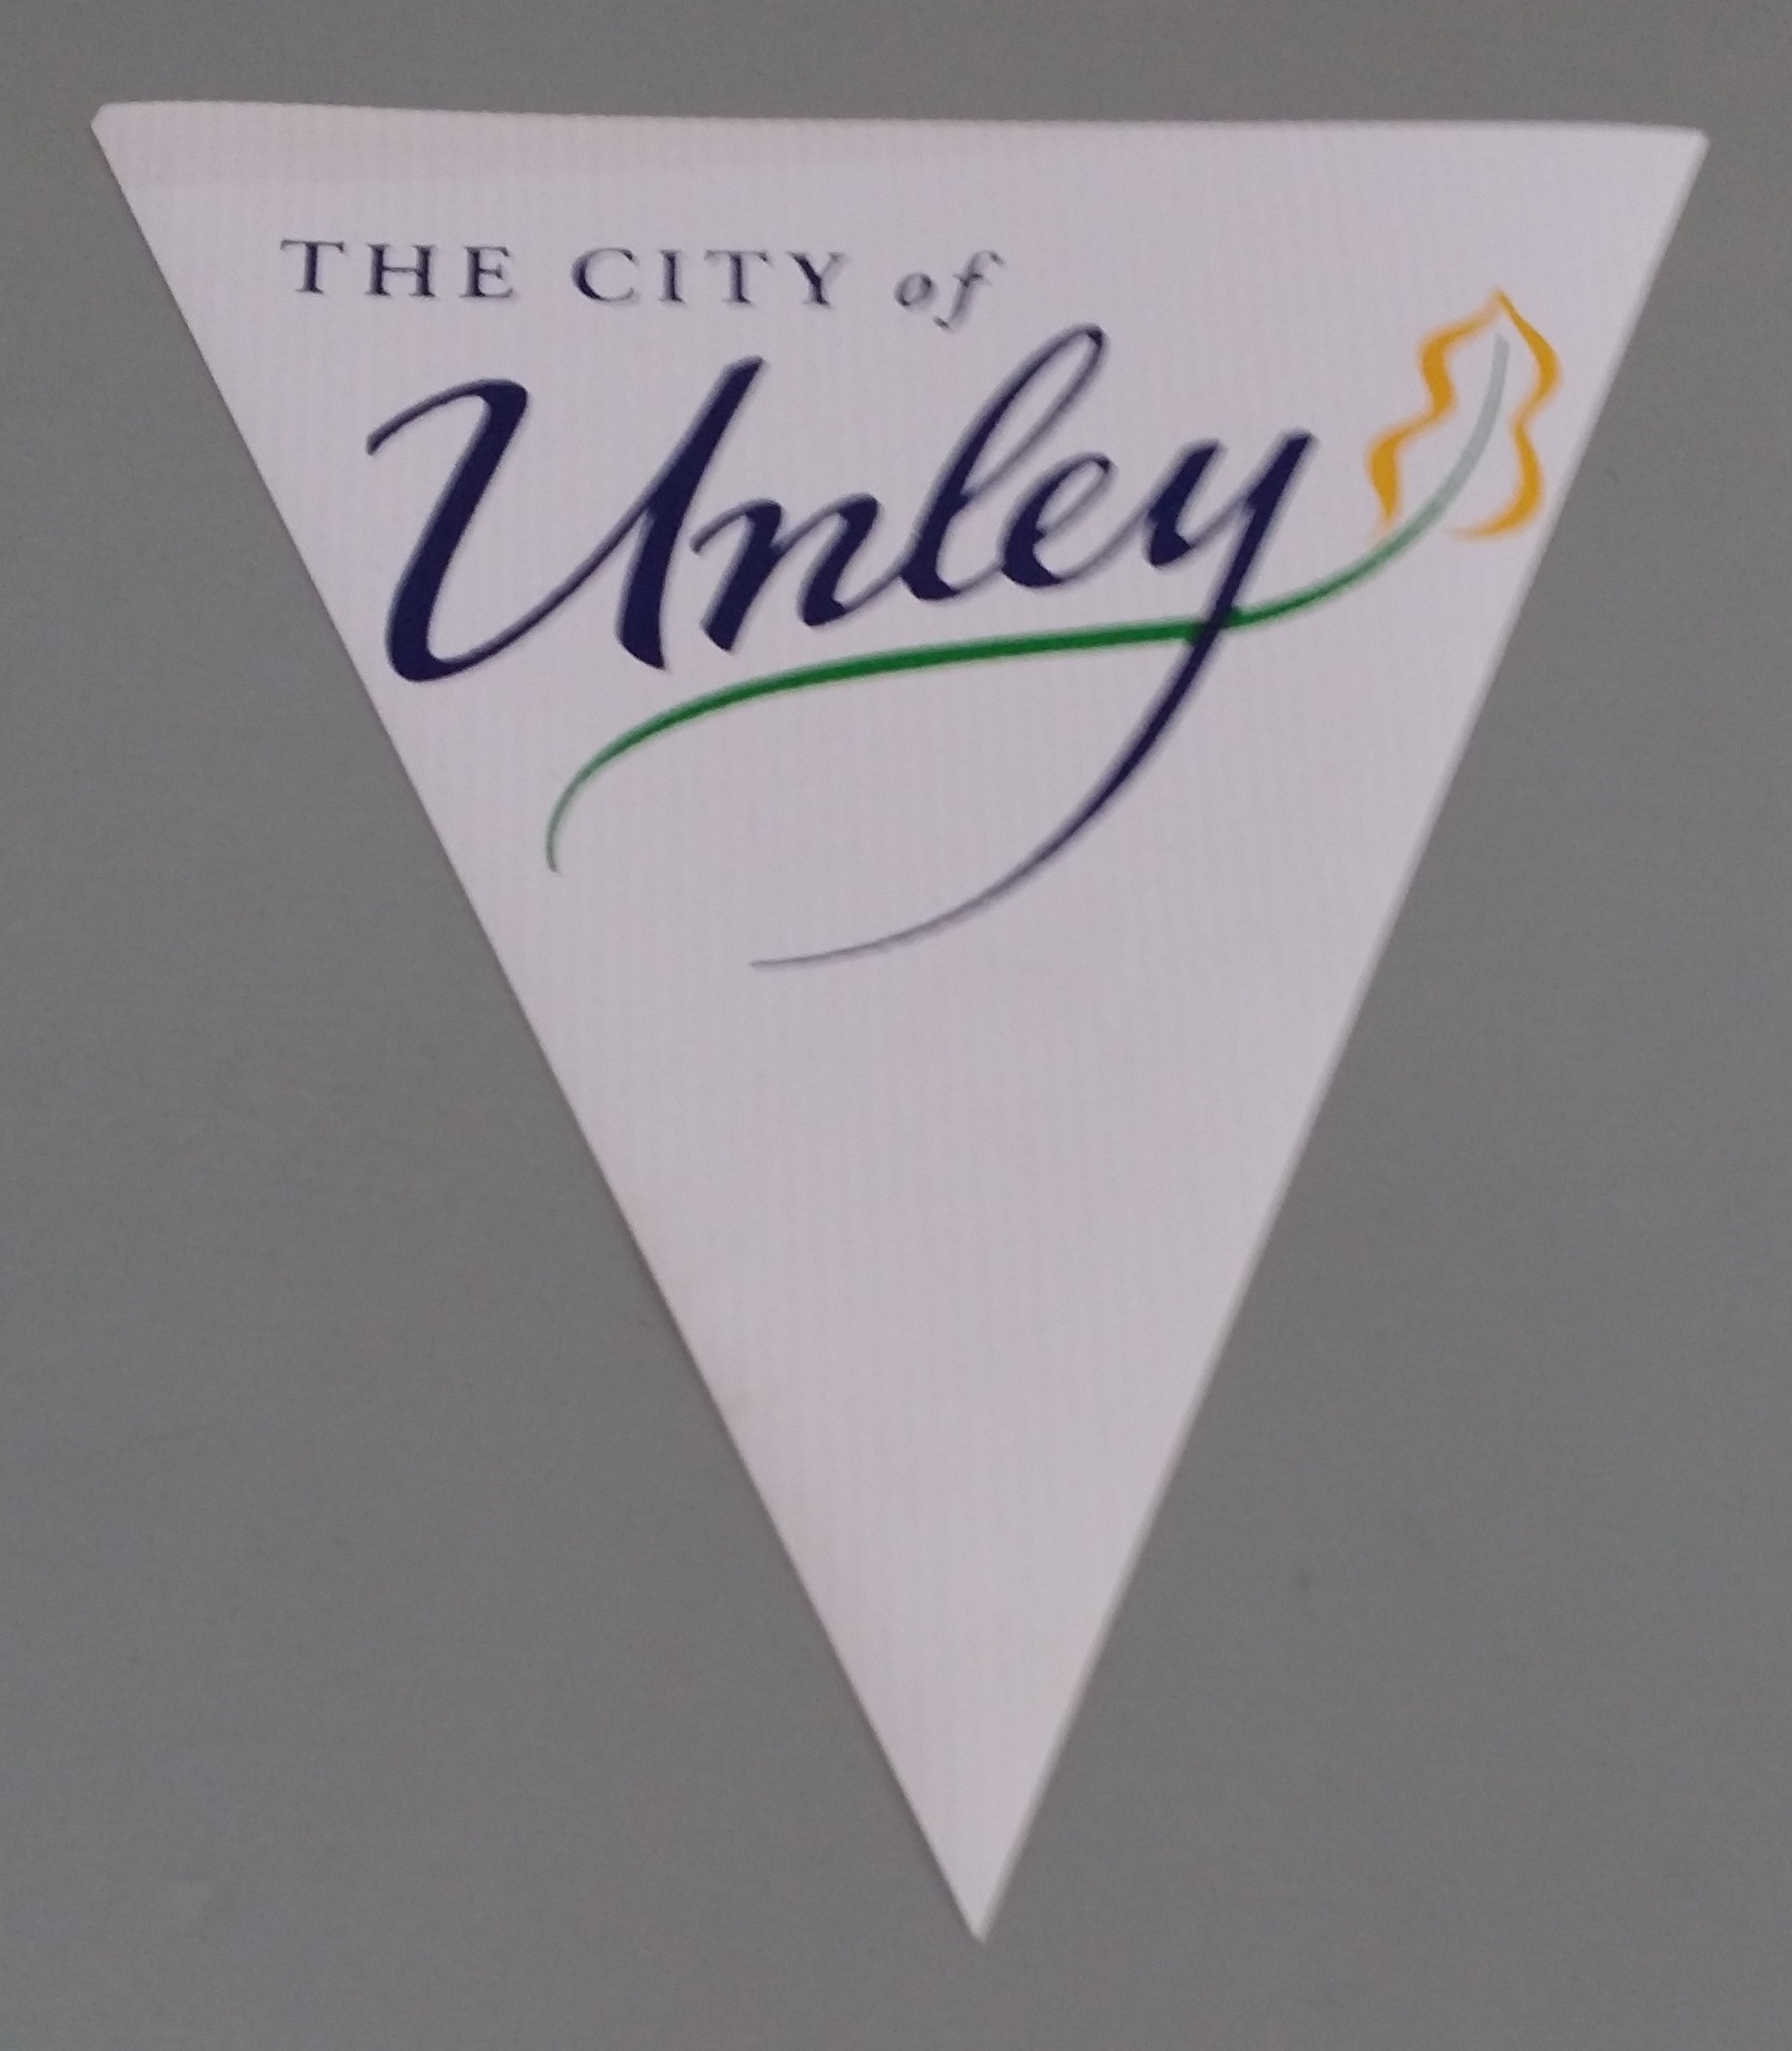 City of Unley (white)